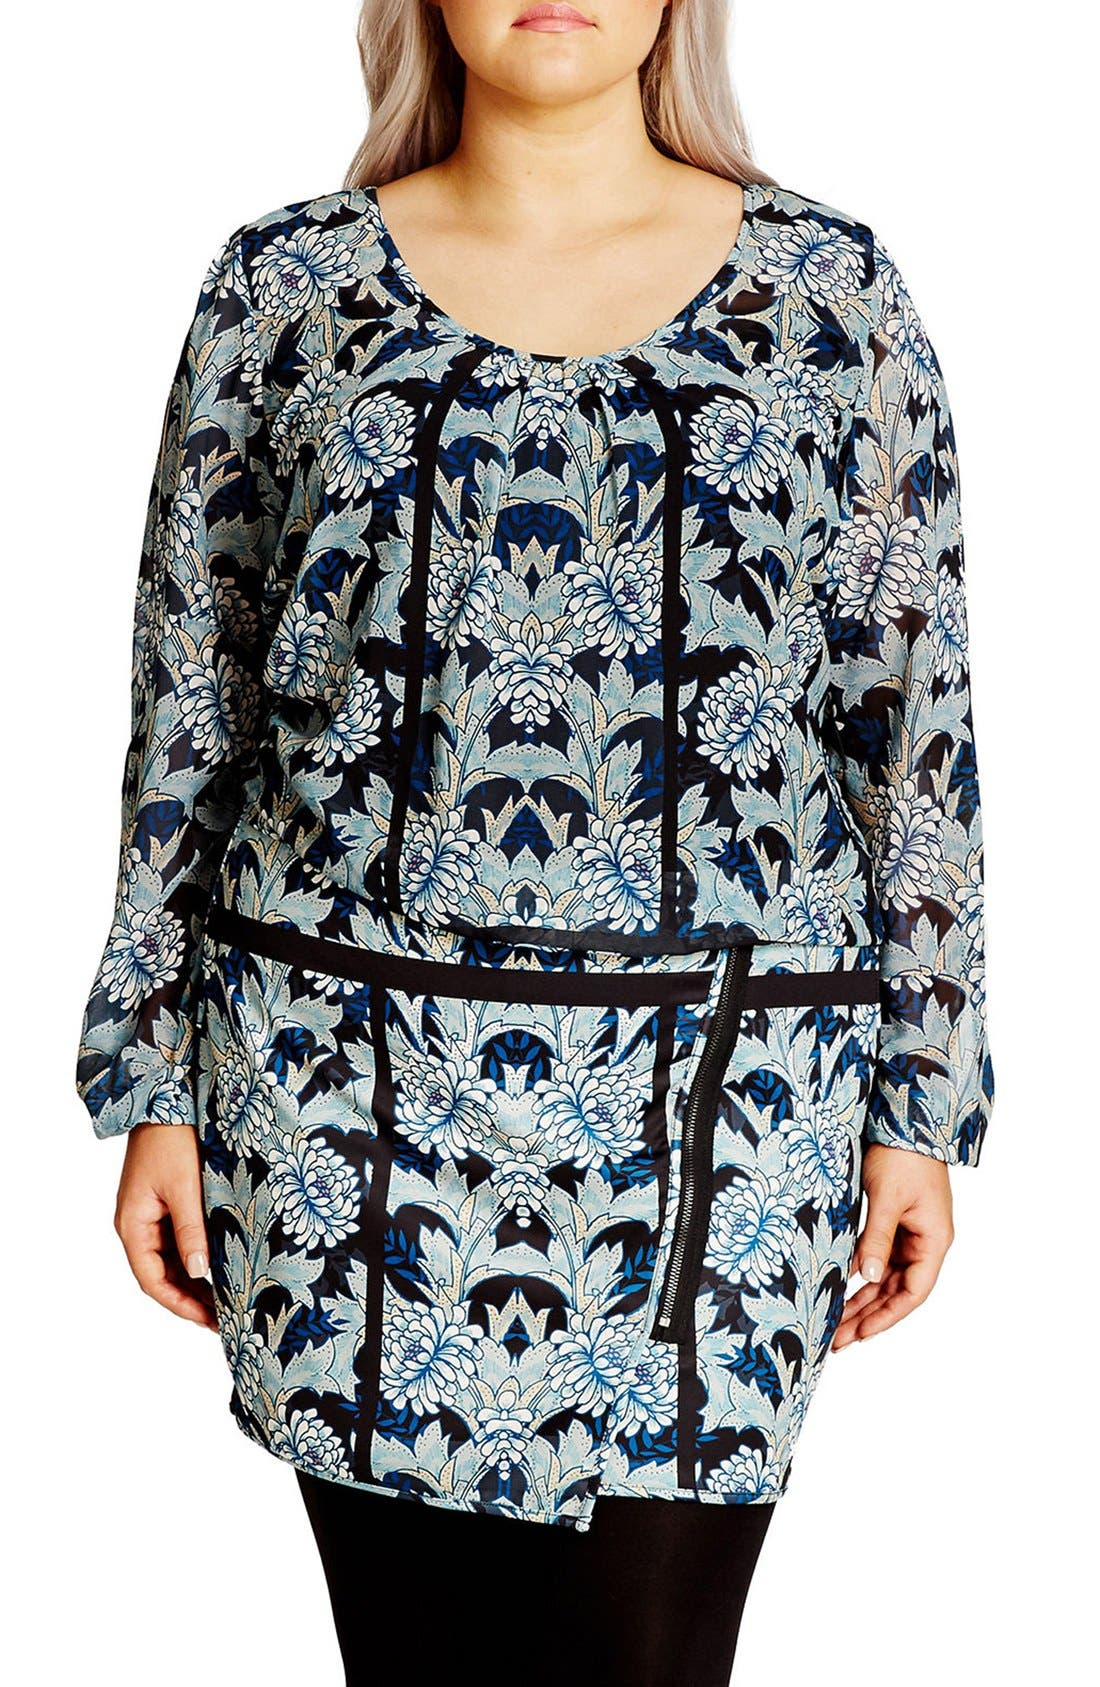 City Chic 'Stained Glass' Blouson Minidress (Plus Size)